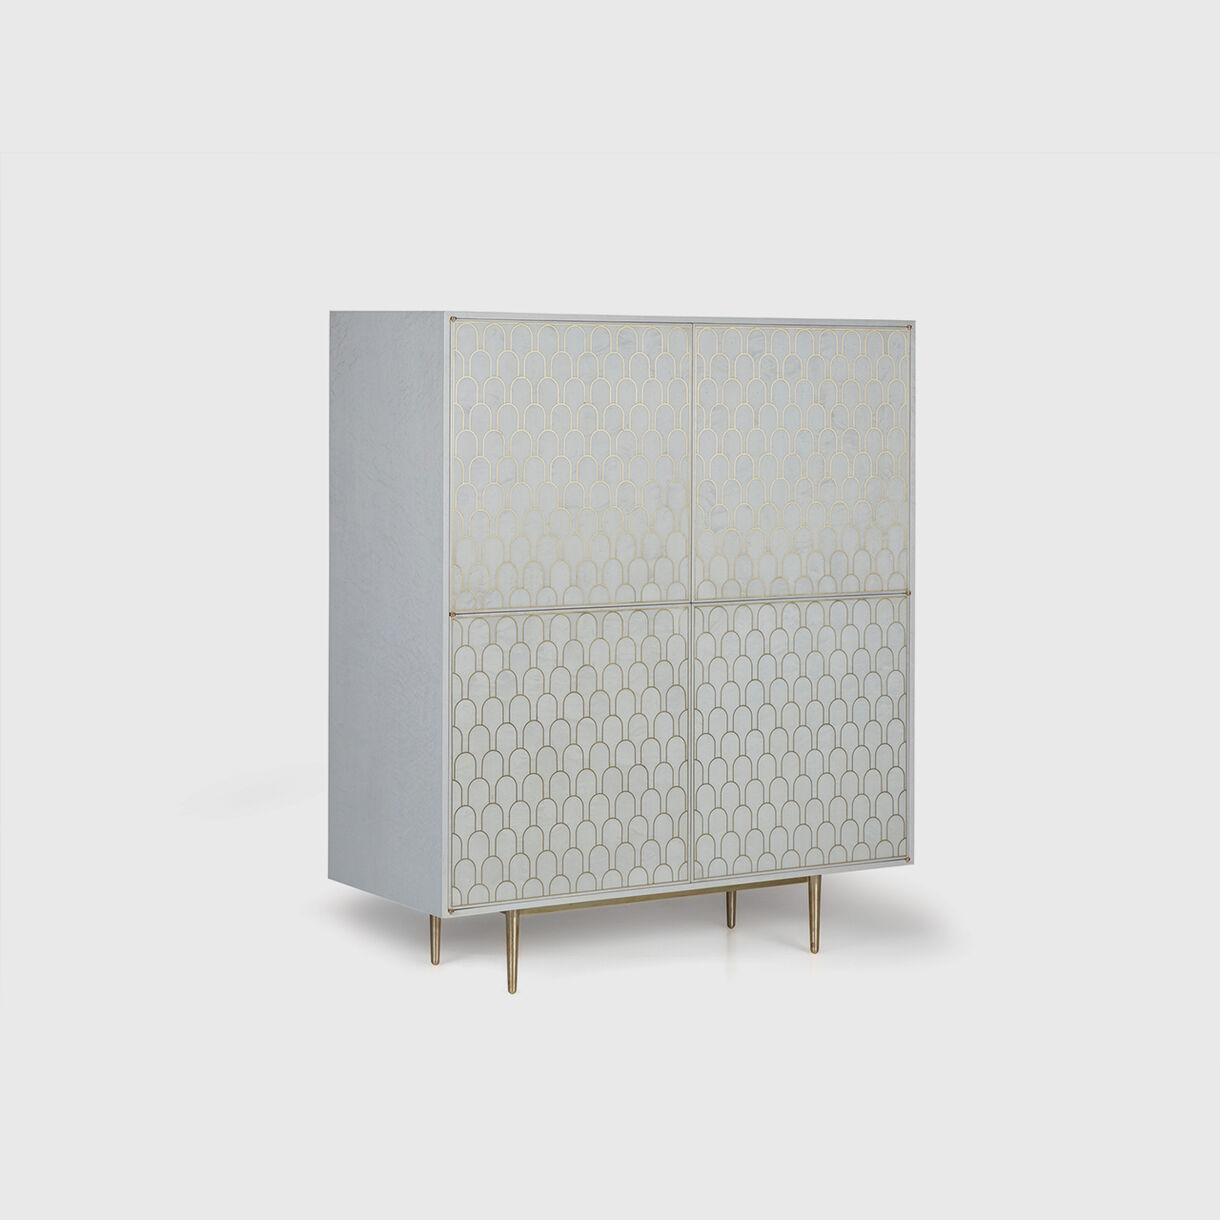 Nizwa 2 by 2-Door Cabinet, White & Brass